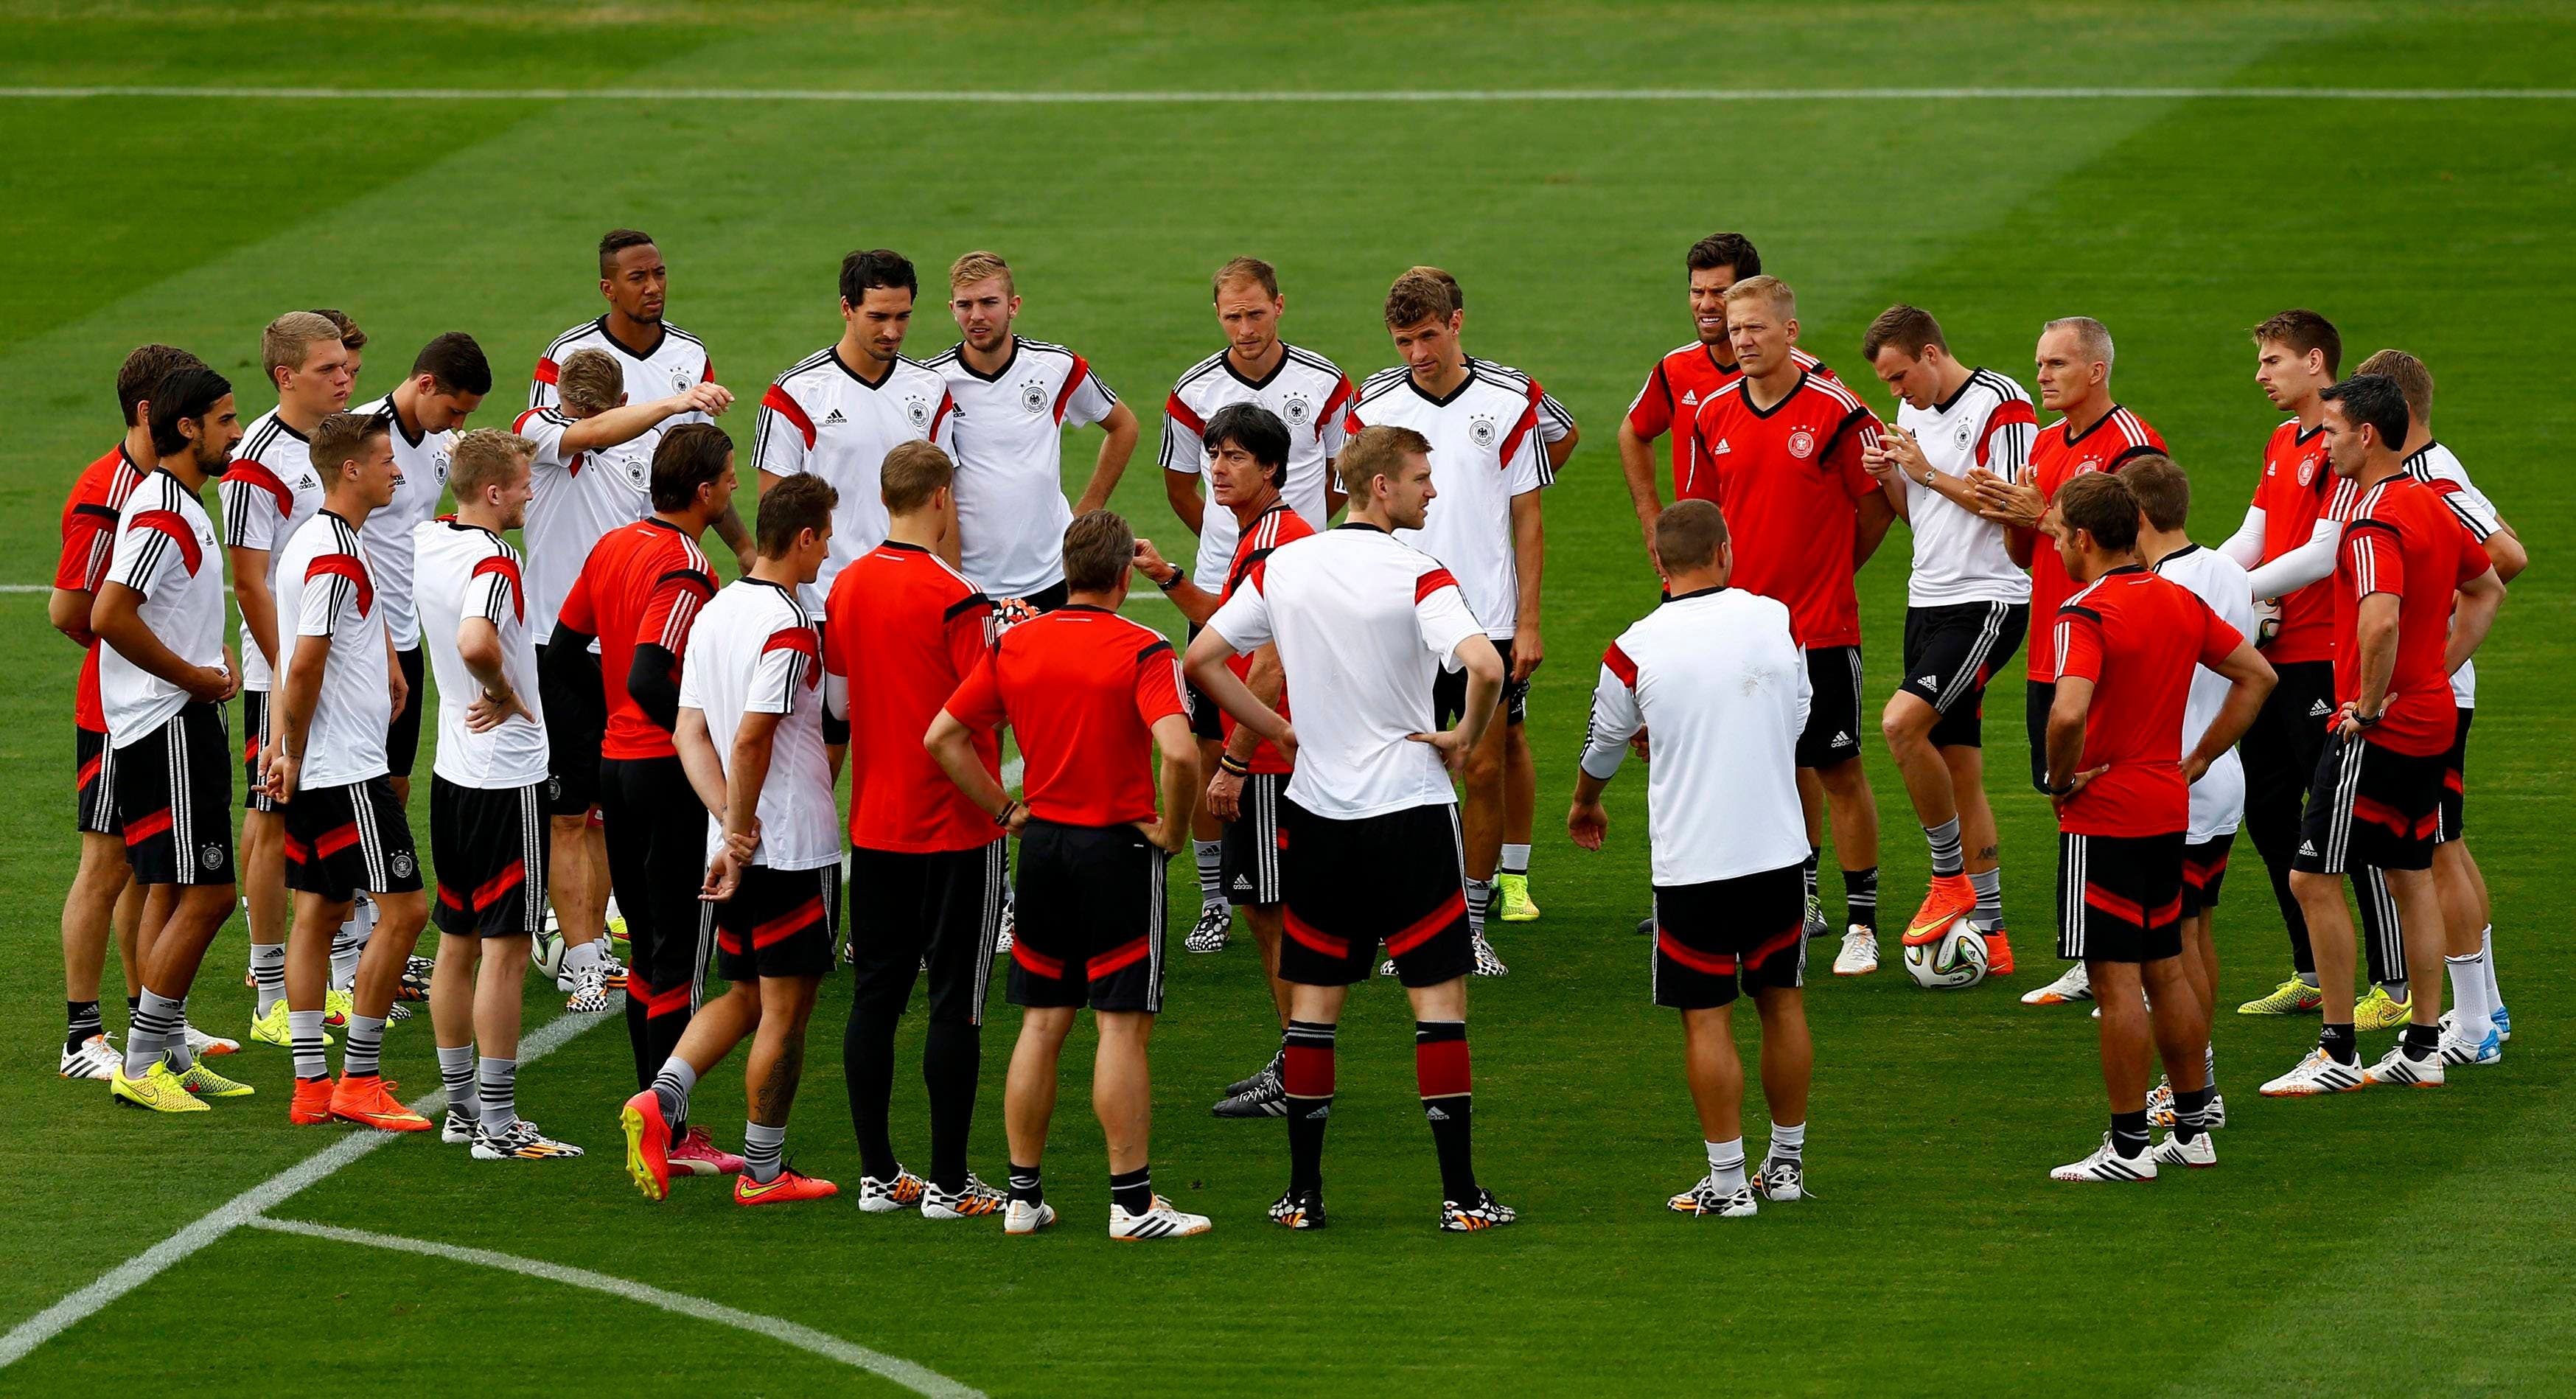 Germany's coach Joachim Loew (C) conducts a during training session in Rio de Janeiro July 12, 2014. (Reuters)